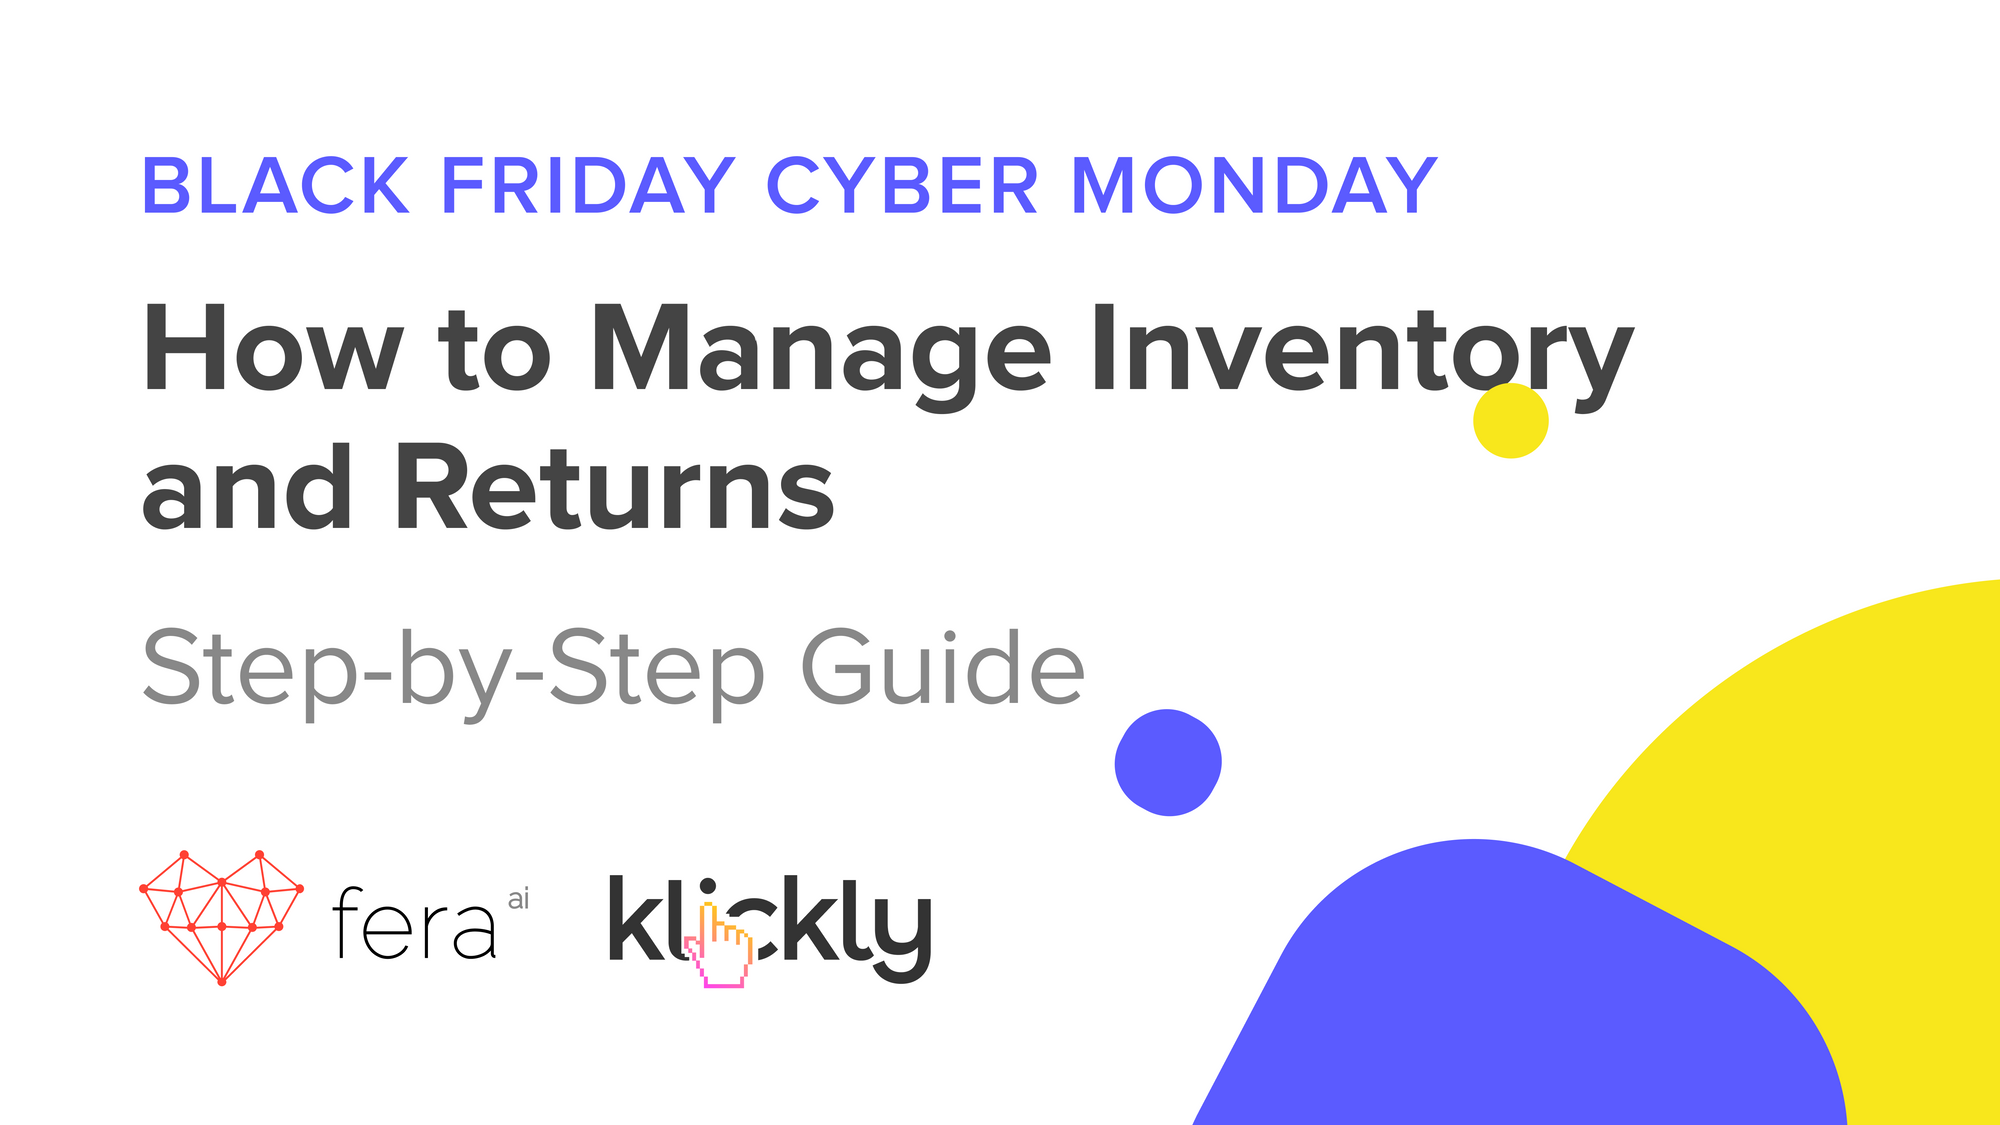 BFCM: HOW TO MANAGE INVENTORY AND RETURNS